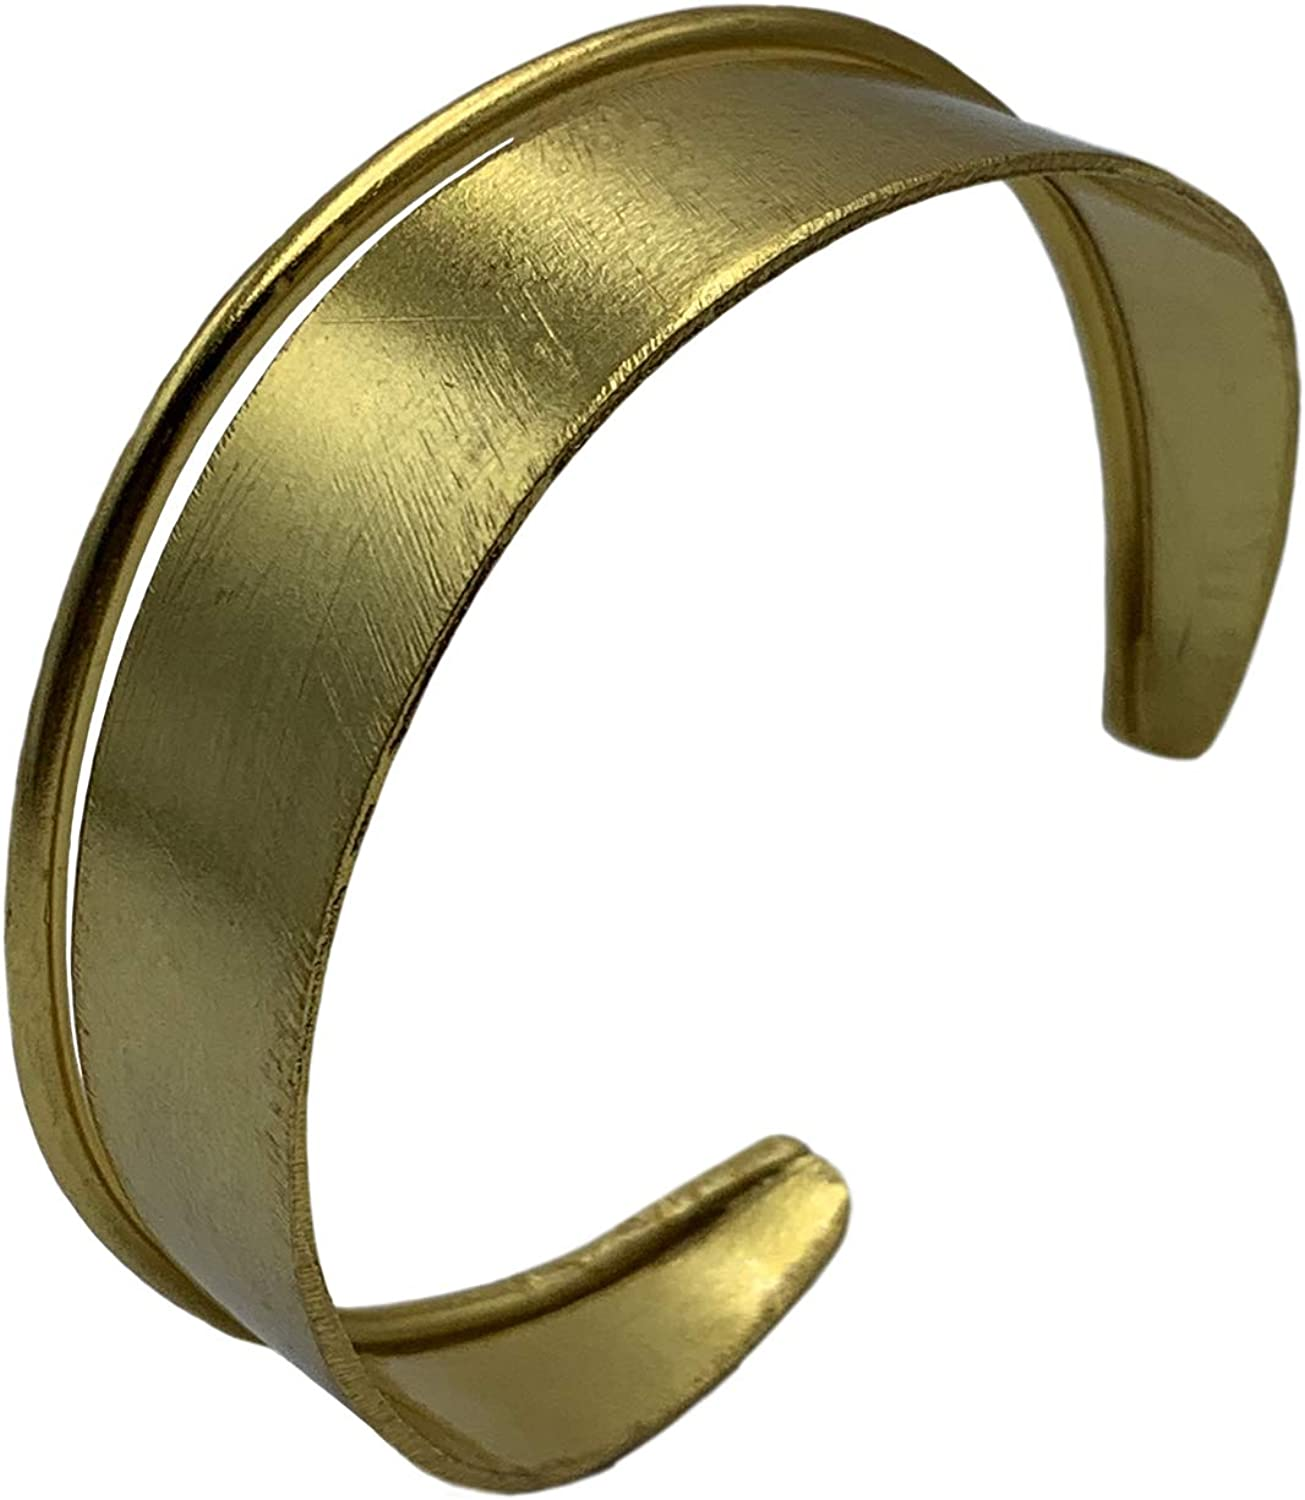 Avery and May Multilayer Stackable Chunky Minimalist Double Handcuff Bangle Bracelet Cuff for Women, Gold Plated Brass